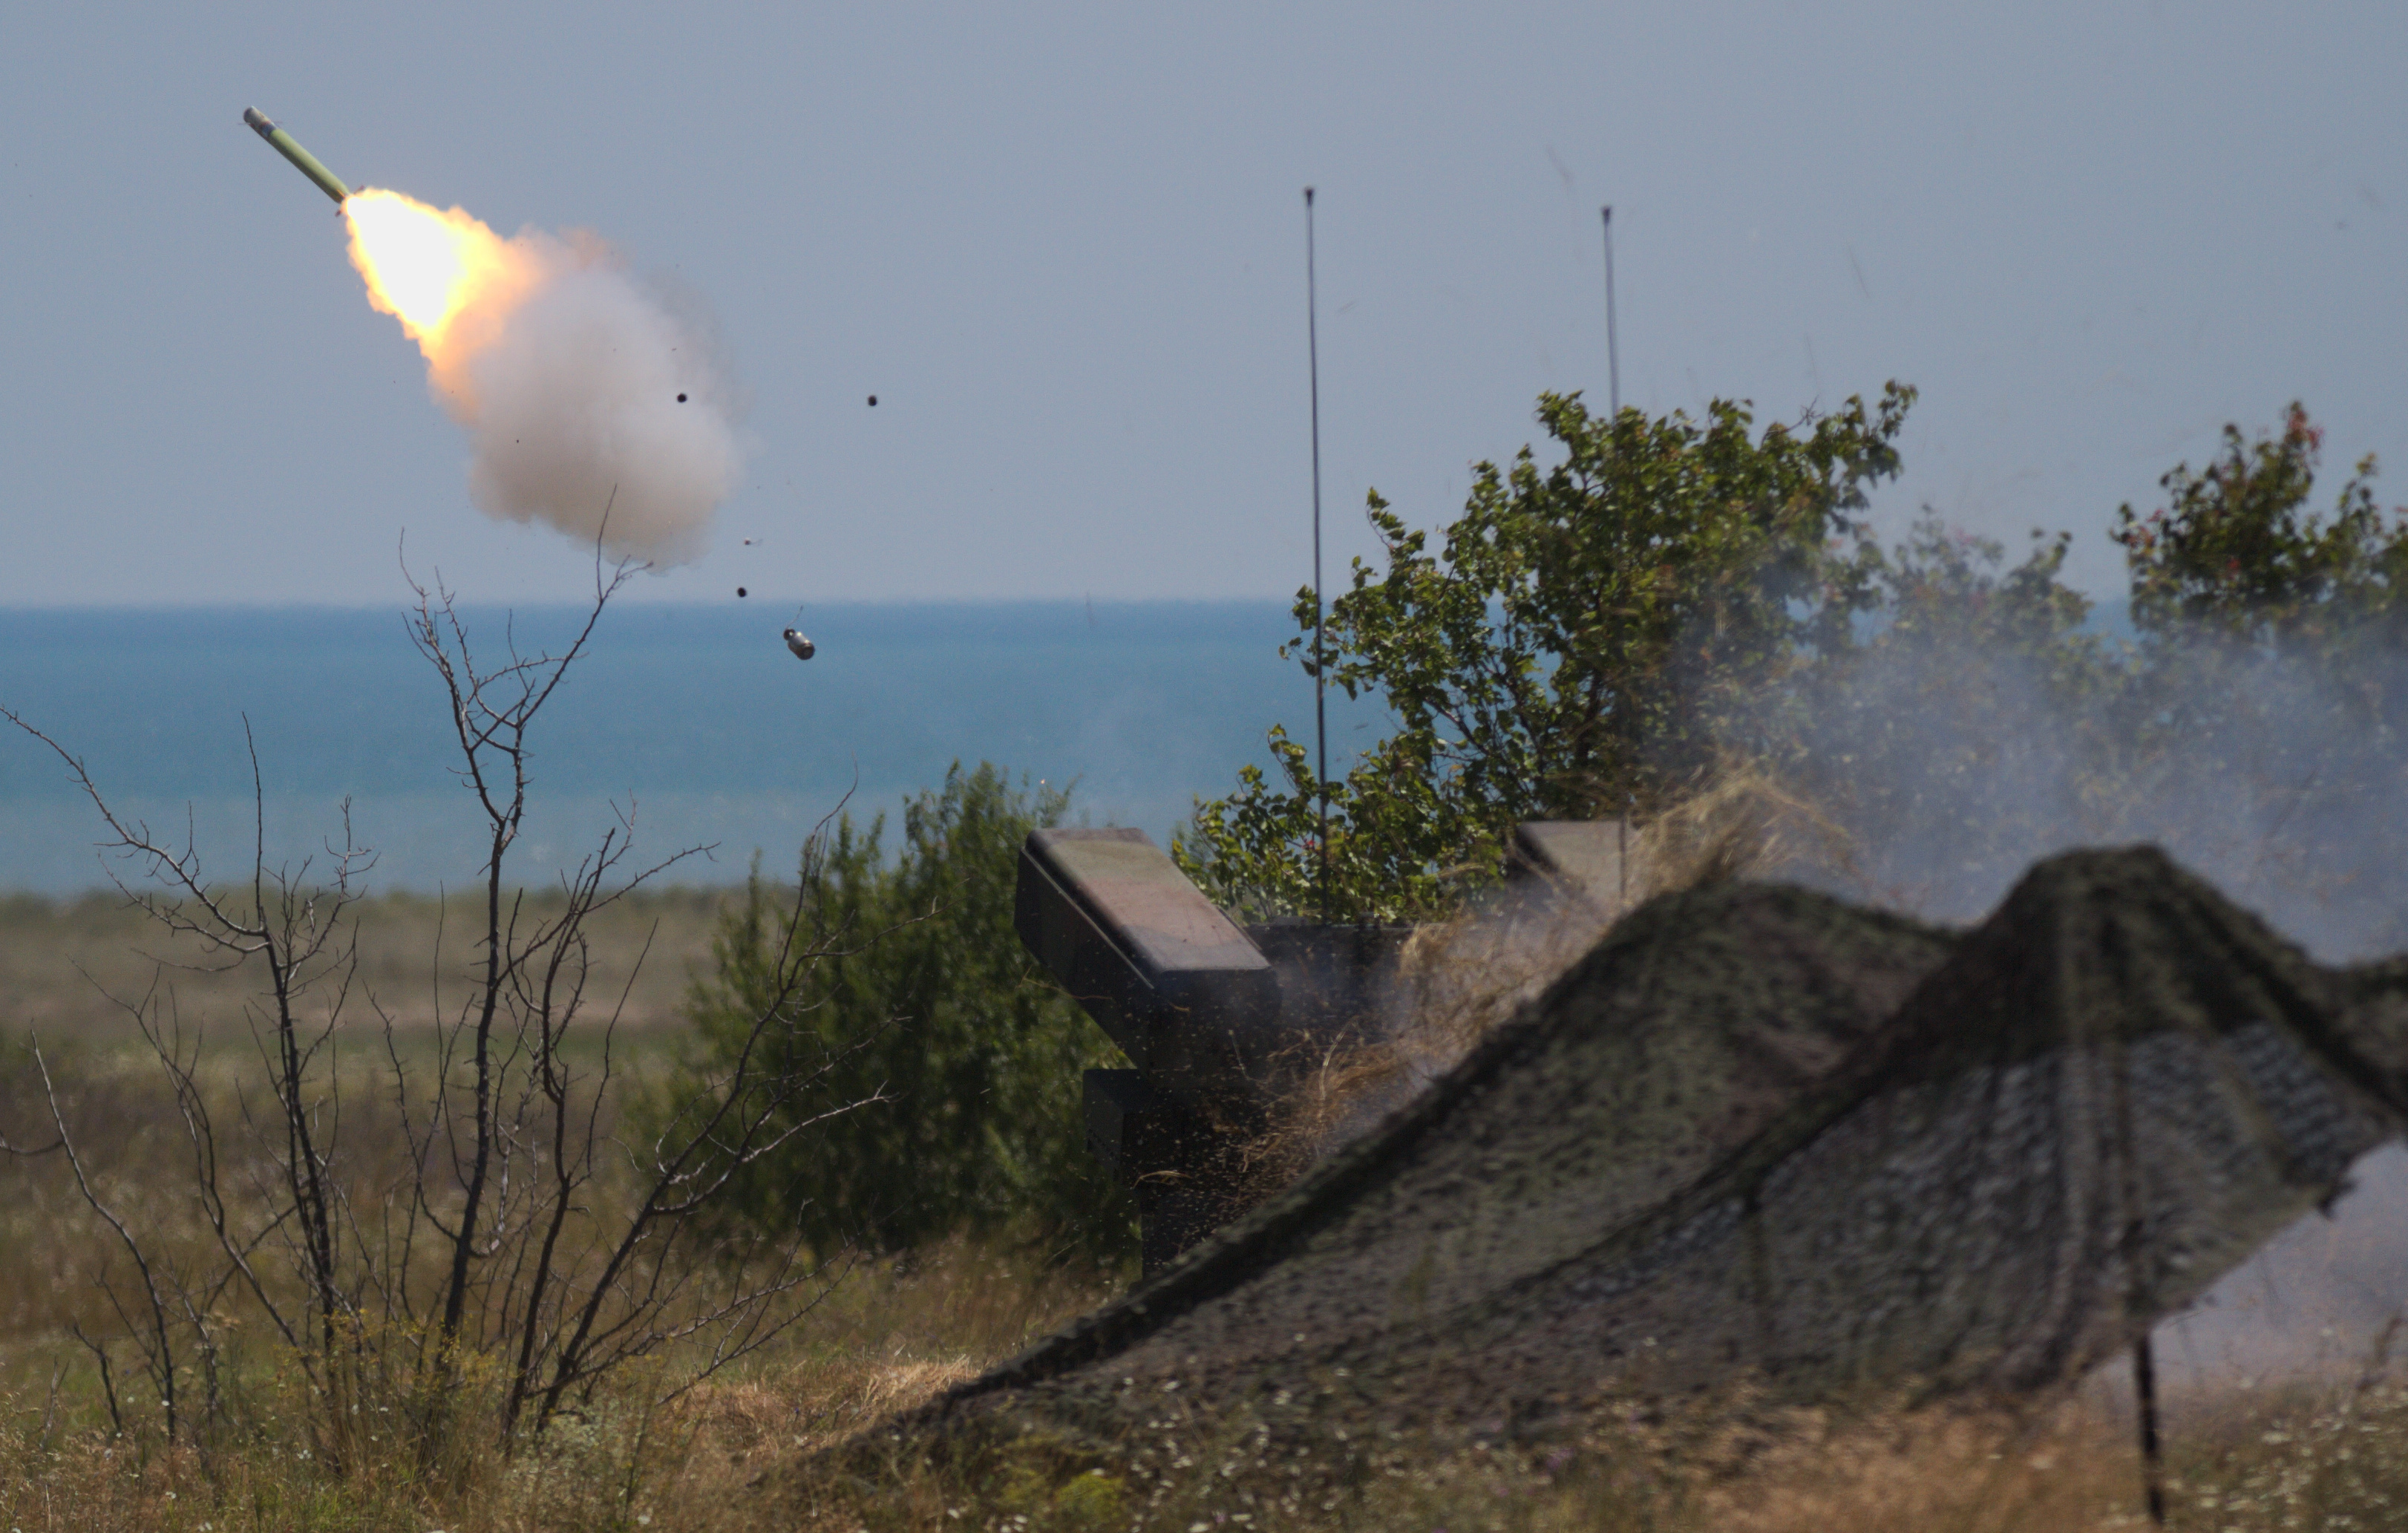 An AN/TWQ-1 Avenger air defense system fires a missile over the Black Sea at Capu Midia Training Area, Romania on July 19, 2017. The drill allowed gunners to fire live missiles as part of Tobruq Legacy, an air defense exercise where the US and its NATO Allies and partners share new knowledge, techniques and strategies to enhance air defense capabilities in Eastern Europe. (Photo by U.S. Army Pfc. Nicholas Vidro, 7th Mobile Public Affairs Detachment)